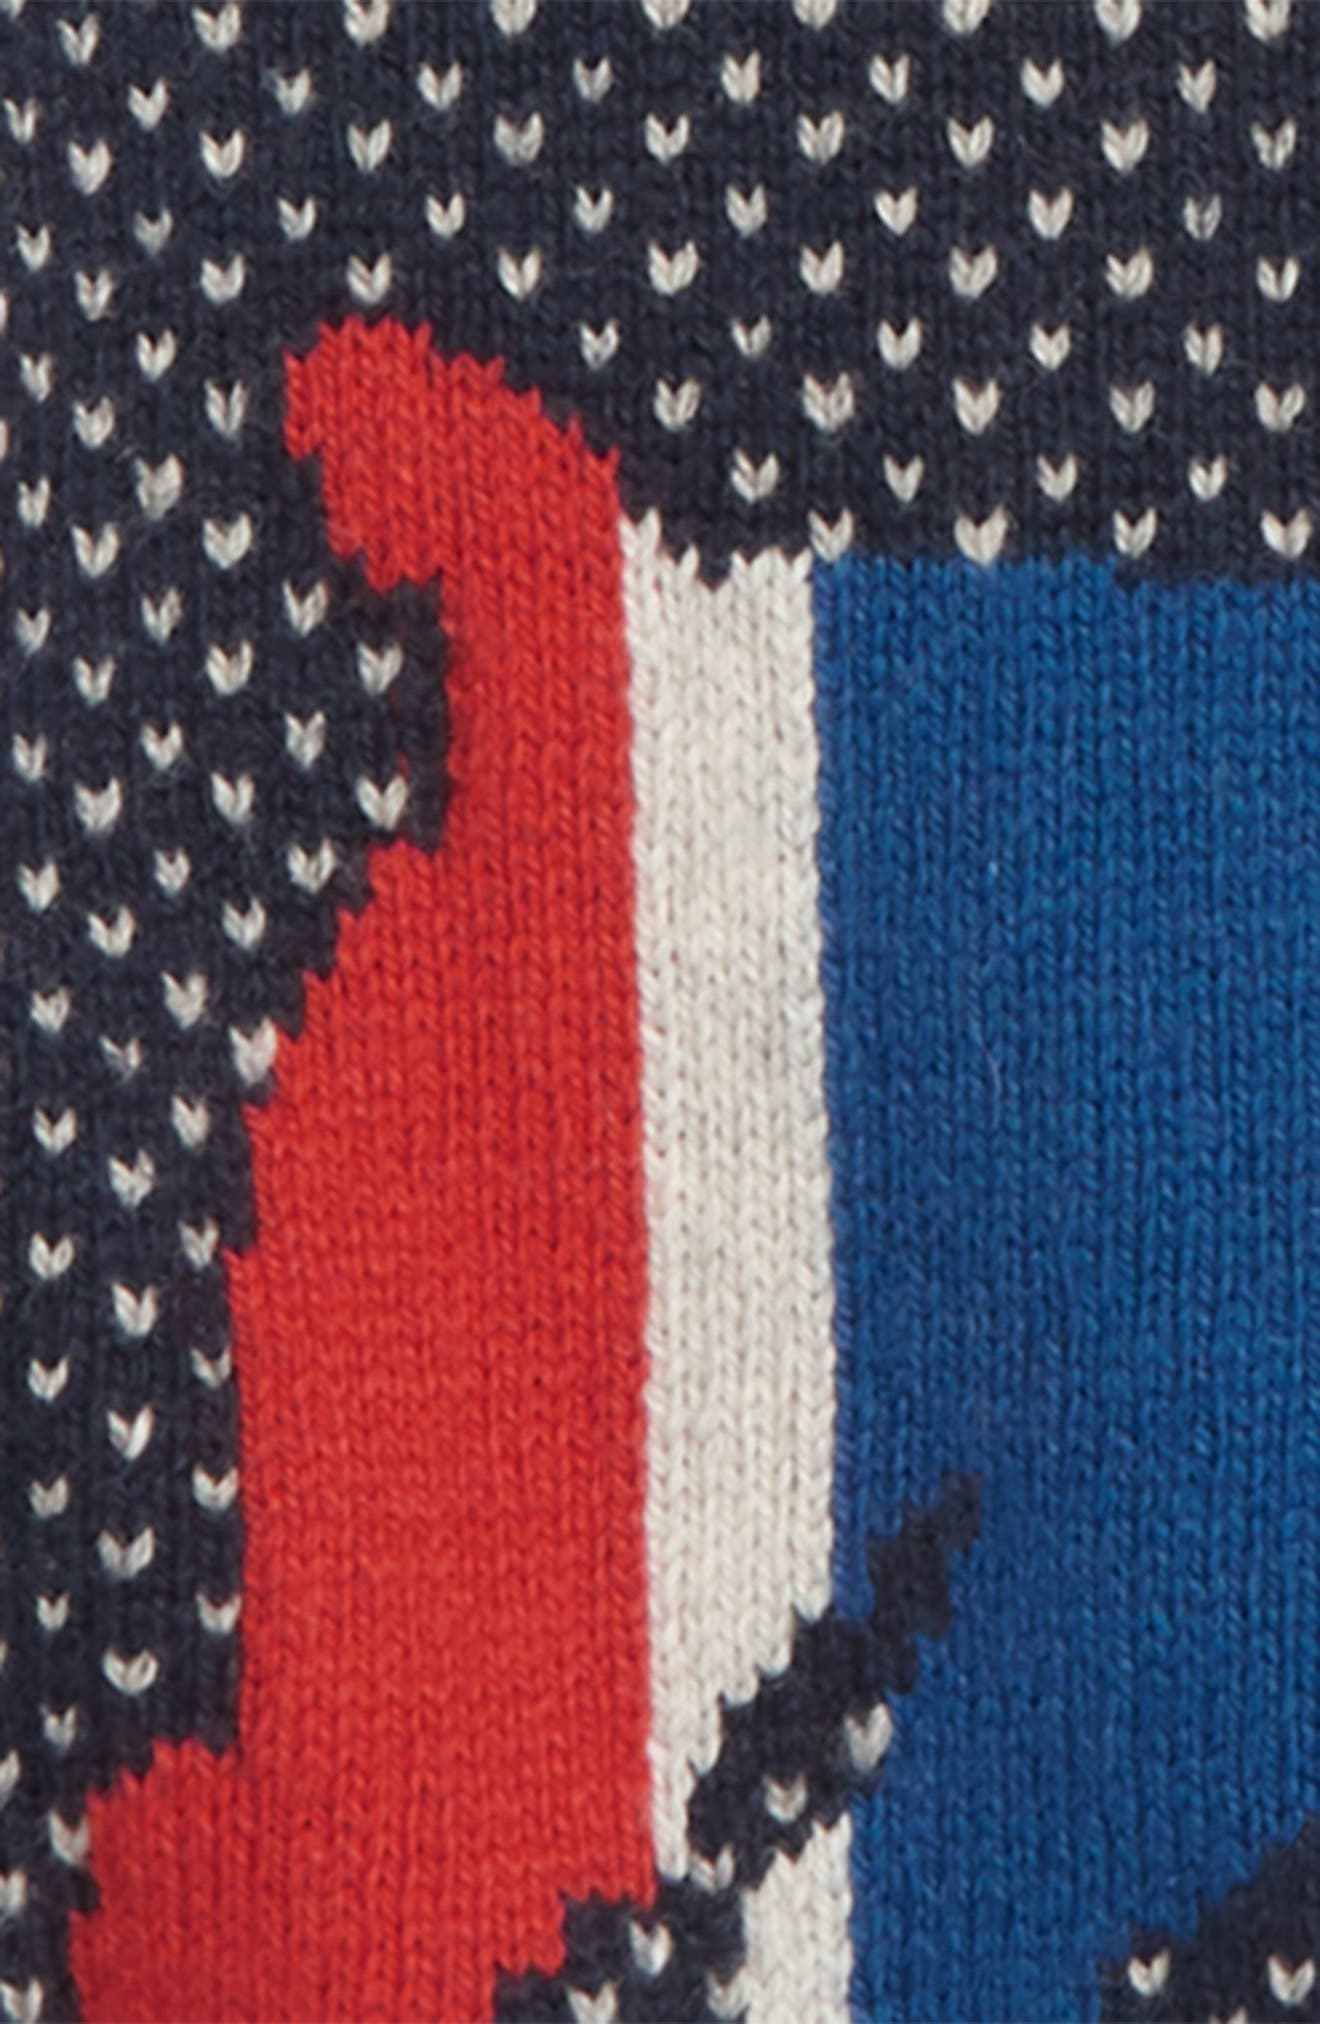 Intarsia Dog Sweater,                             Alternate thumbnail 3, color,                             SCHOOL NAVY RAINBOW